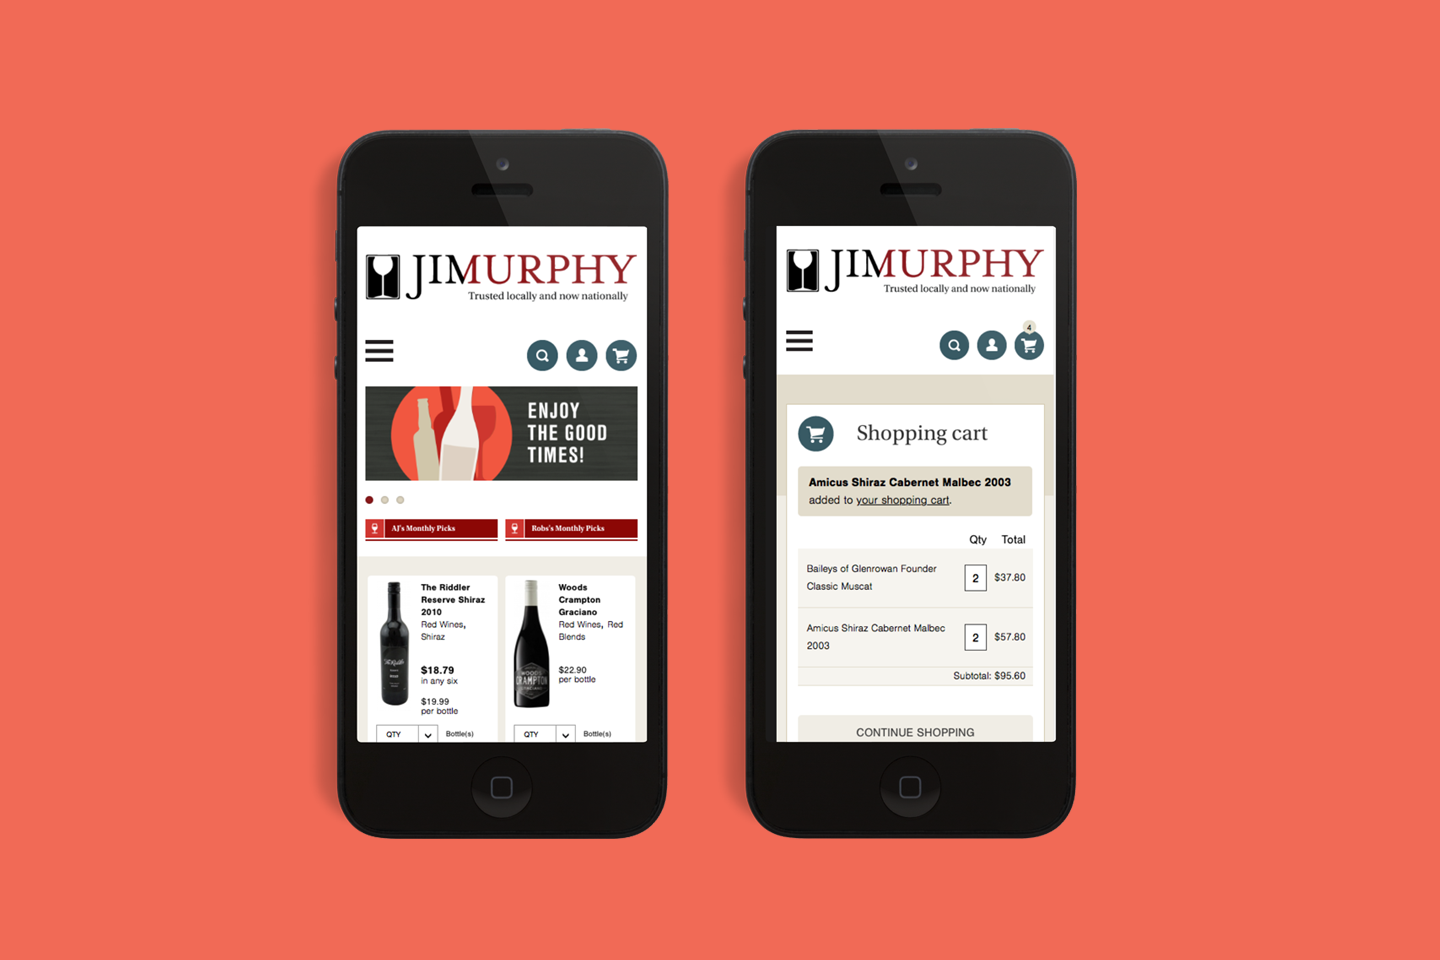 Jim murphy mobile responsive design